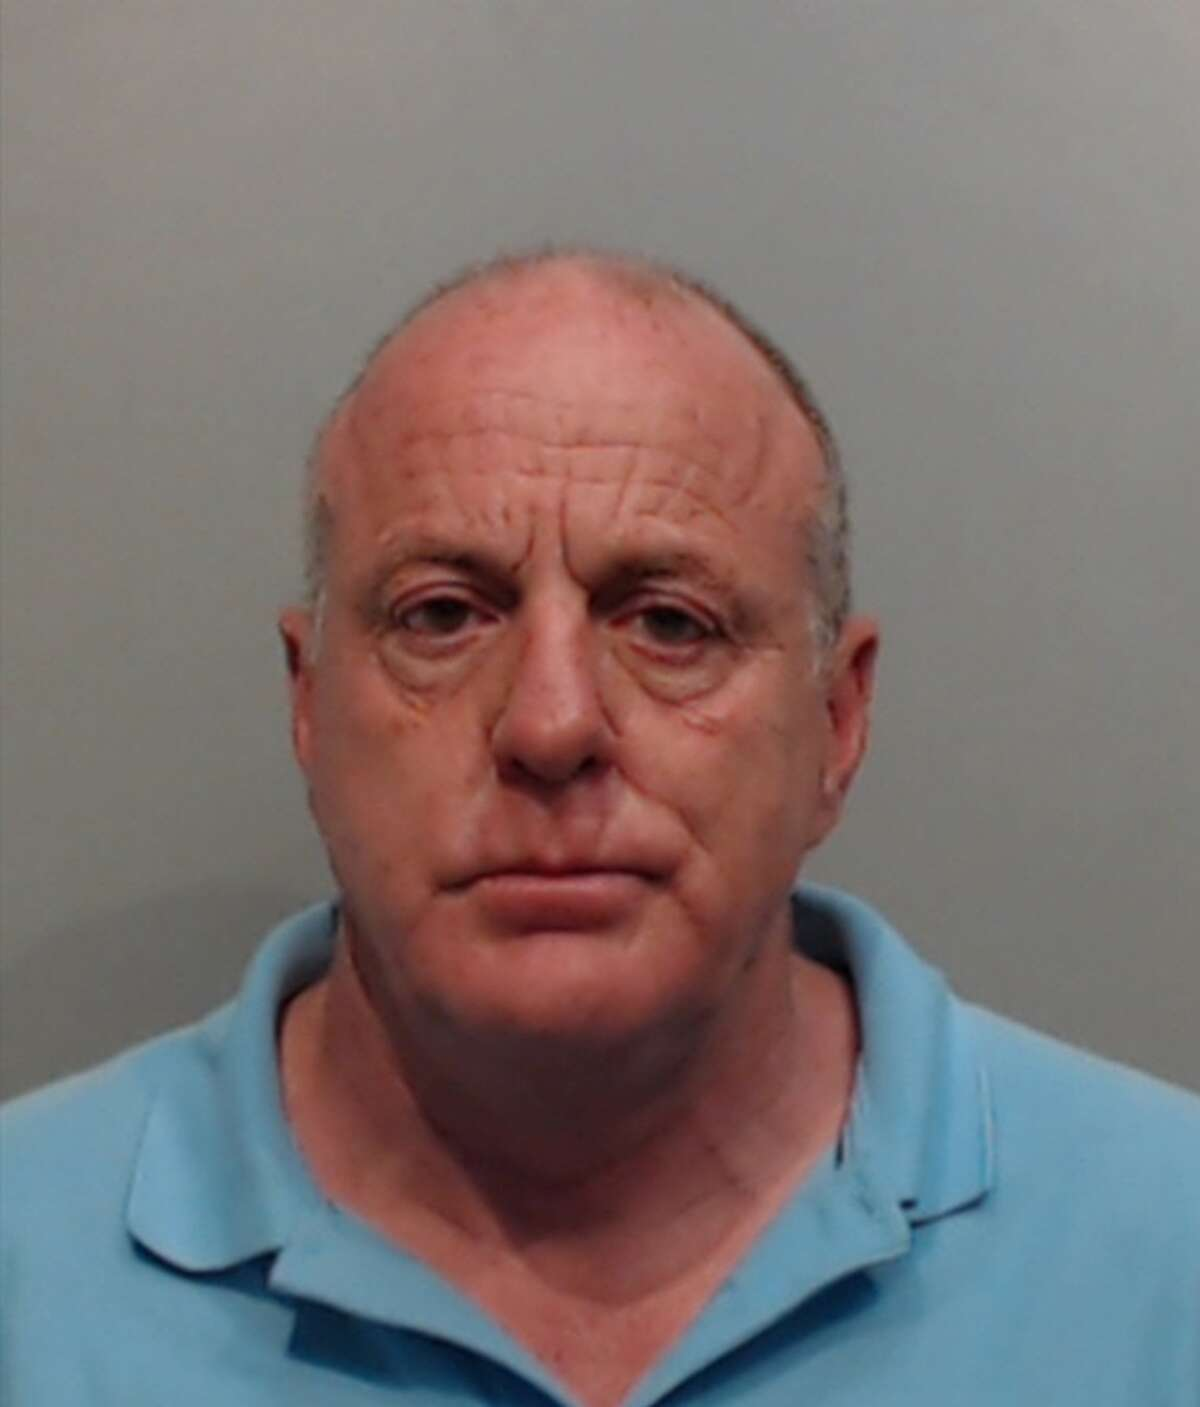 Authorities identified the driver of the Expedition as Neil Sheehan, 58. He was arrested and charged with intoxication assault on a public servant and failure to slow causing serious bodily injury.